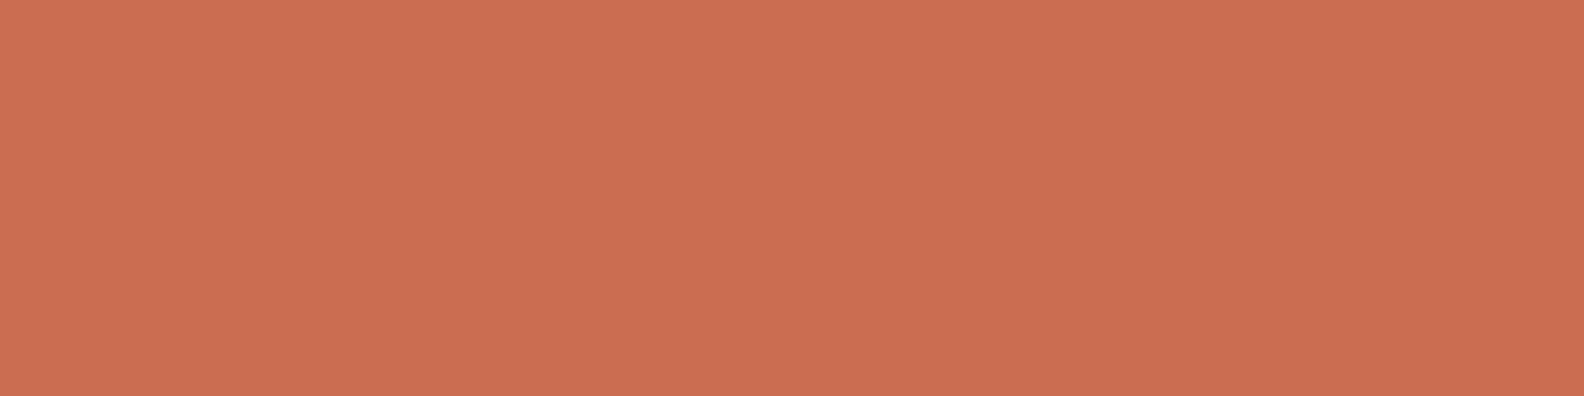 1584x396 Copper Red Solid Color Background